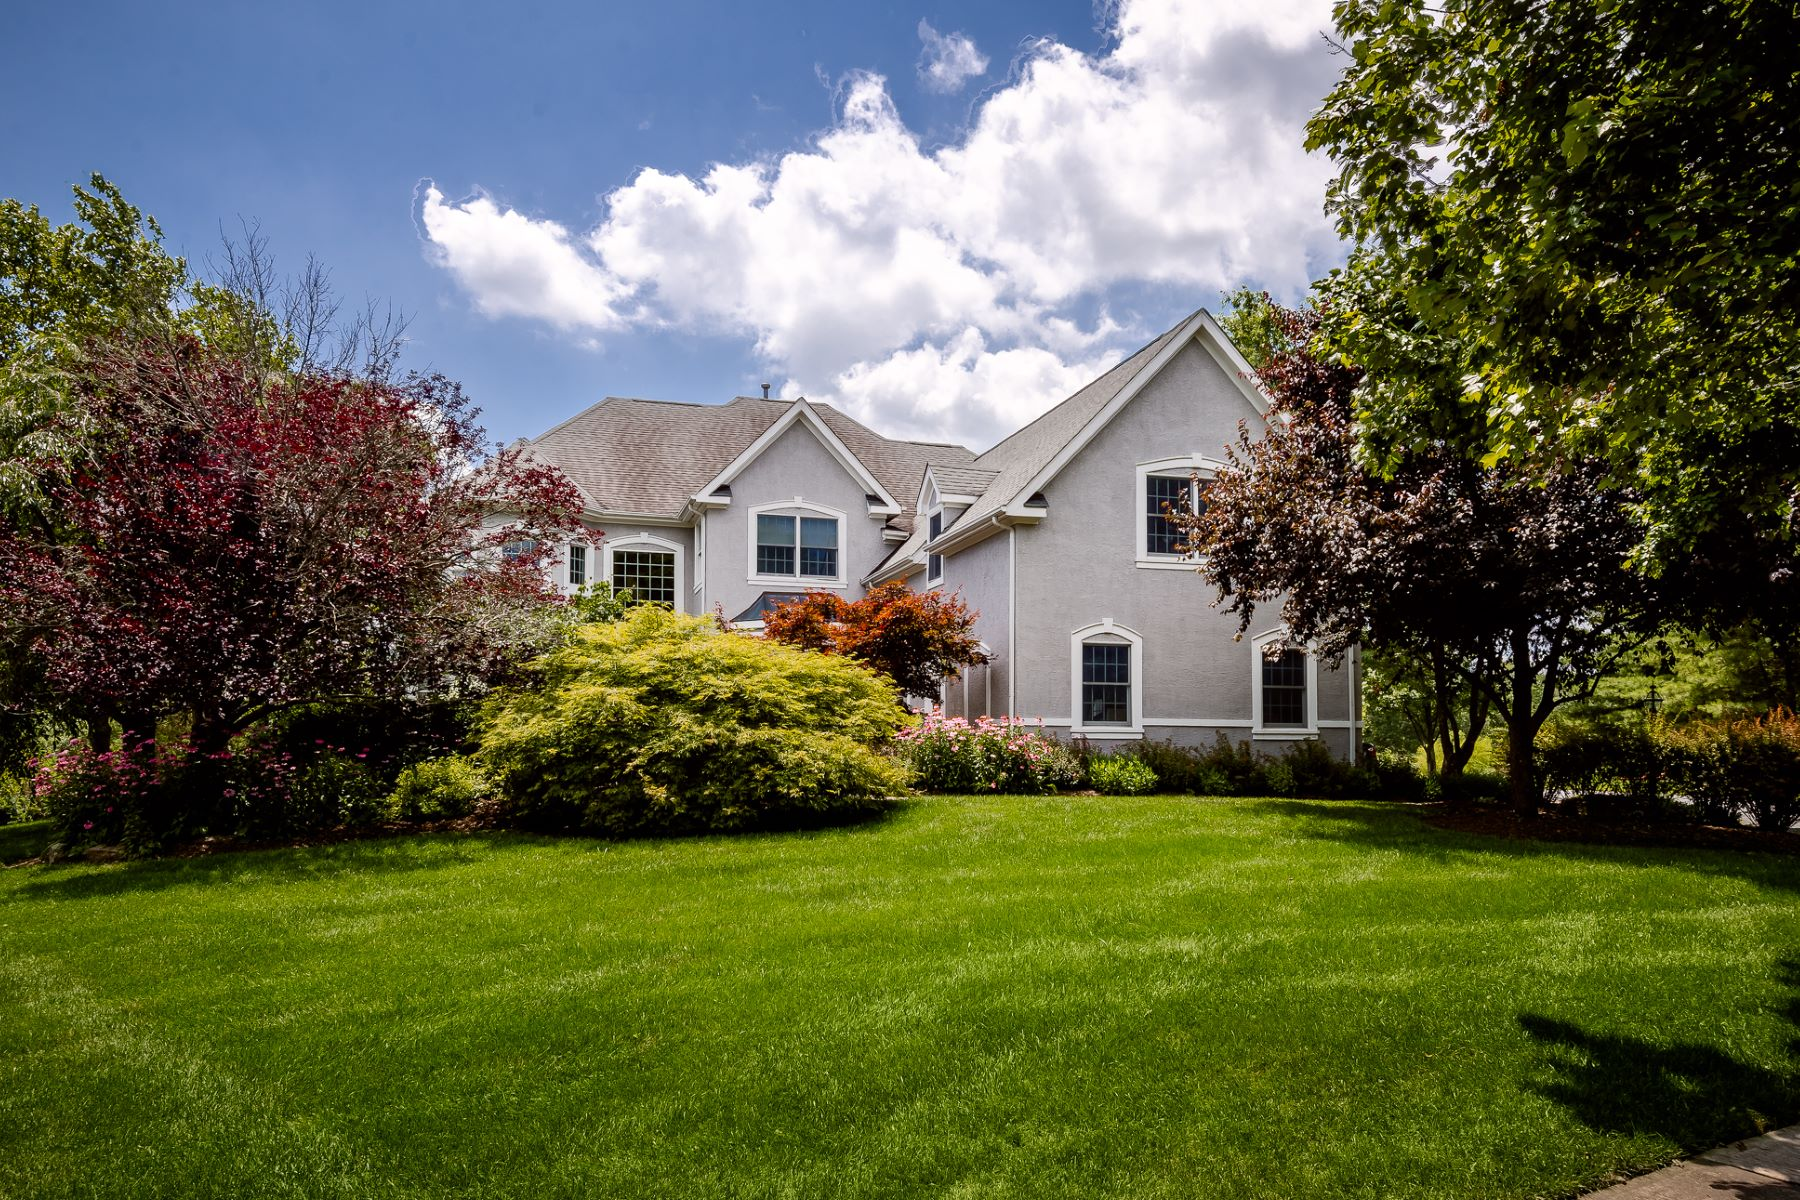 Single Family Homes for Sale at Beauty Surrounds This Custom Cherry Valley Country Club Colonial 7 Kittansett Court, Skillman, New Jersey 08558 United States